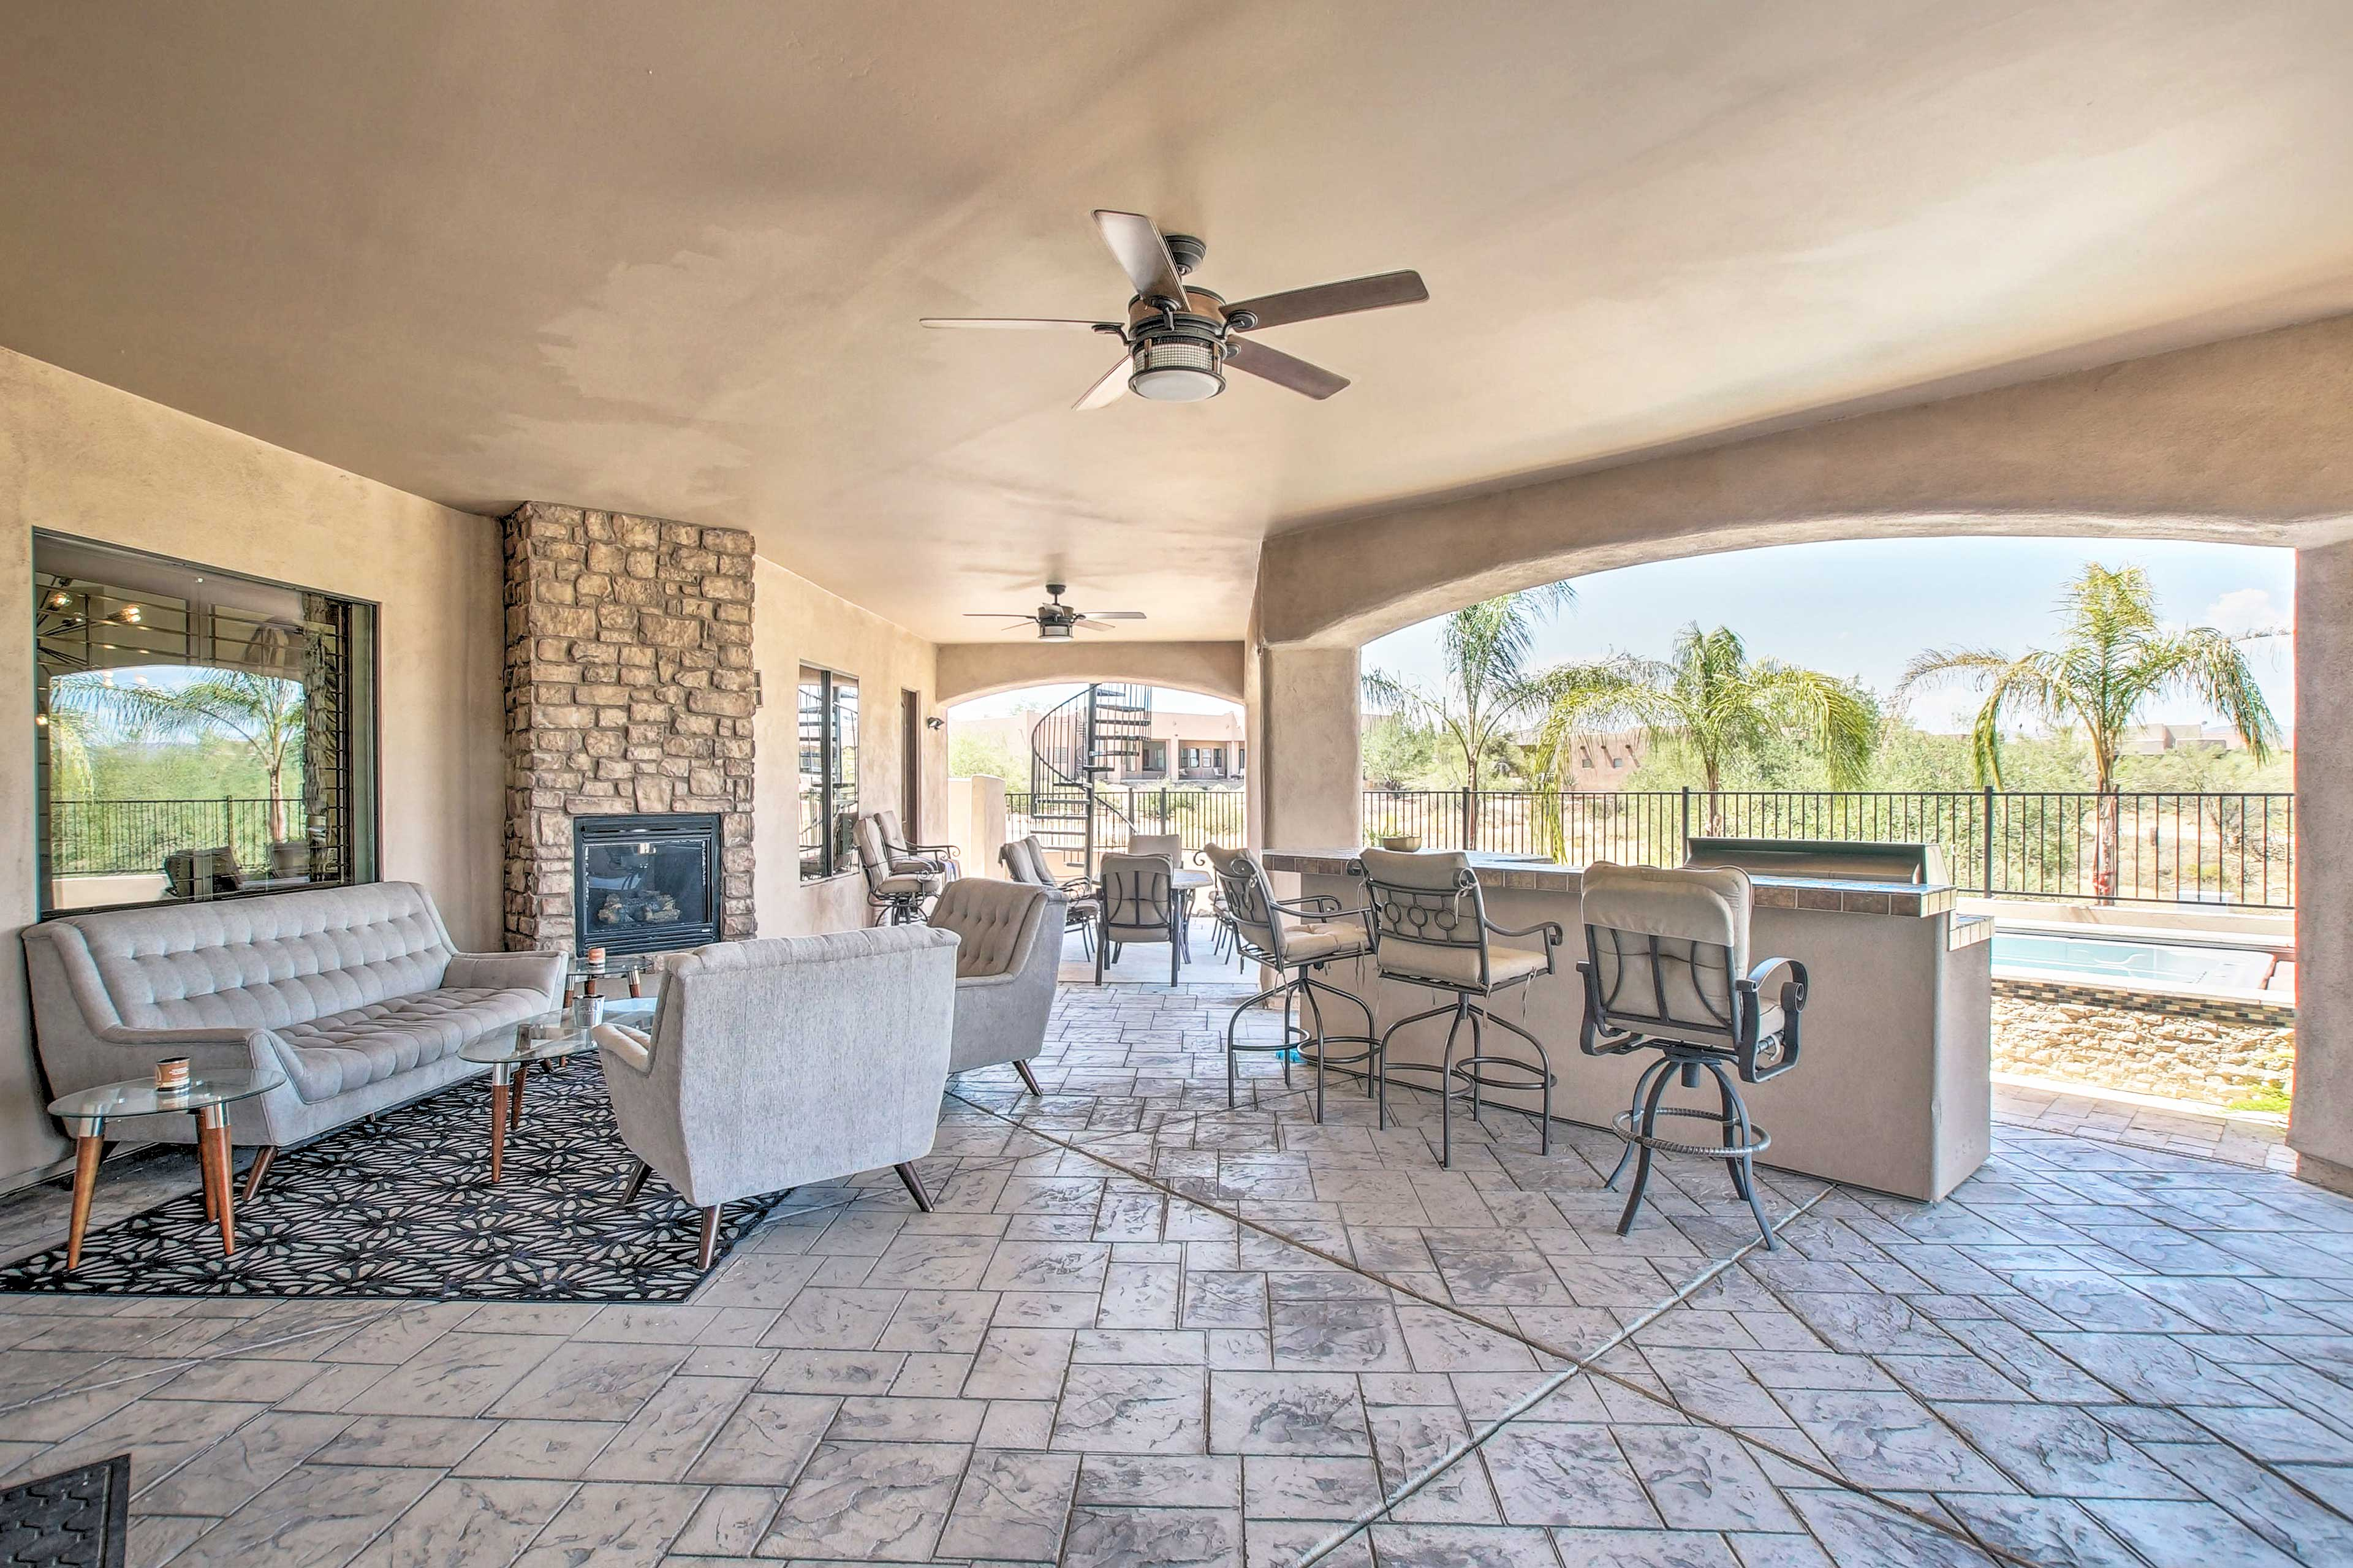 The covered patio is an oasis!